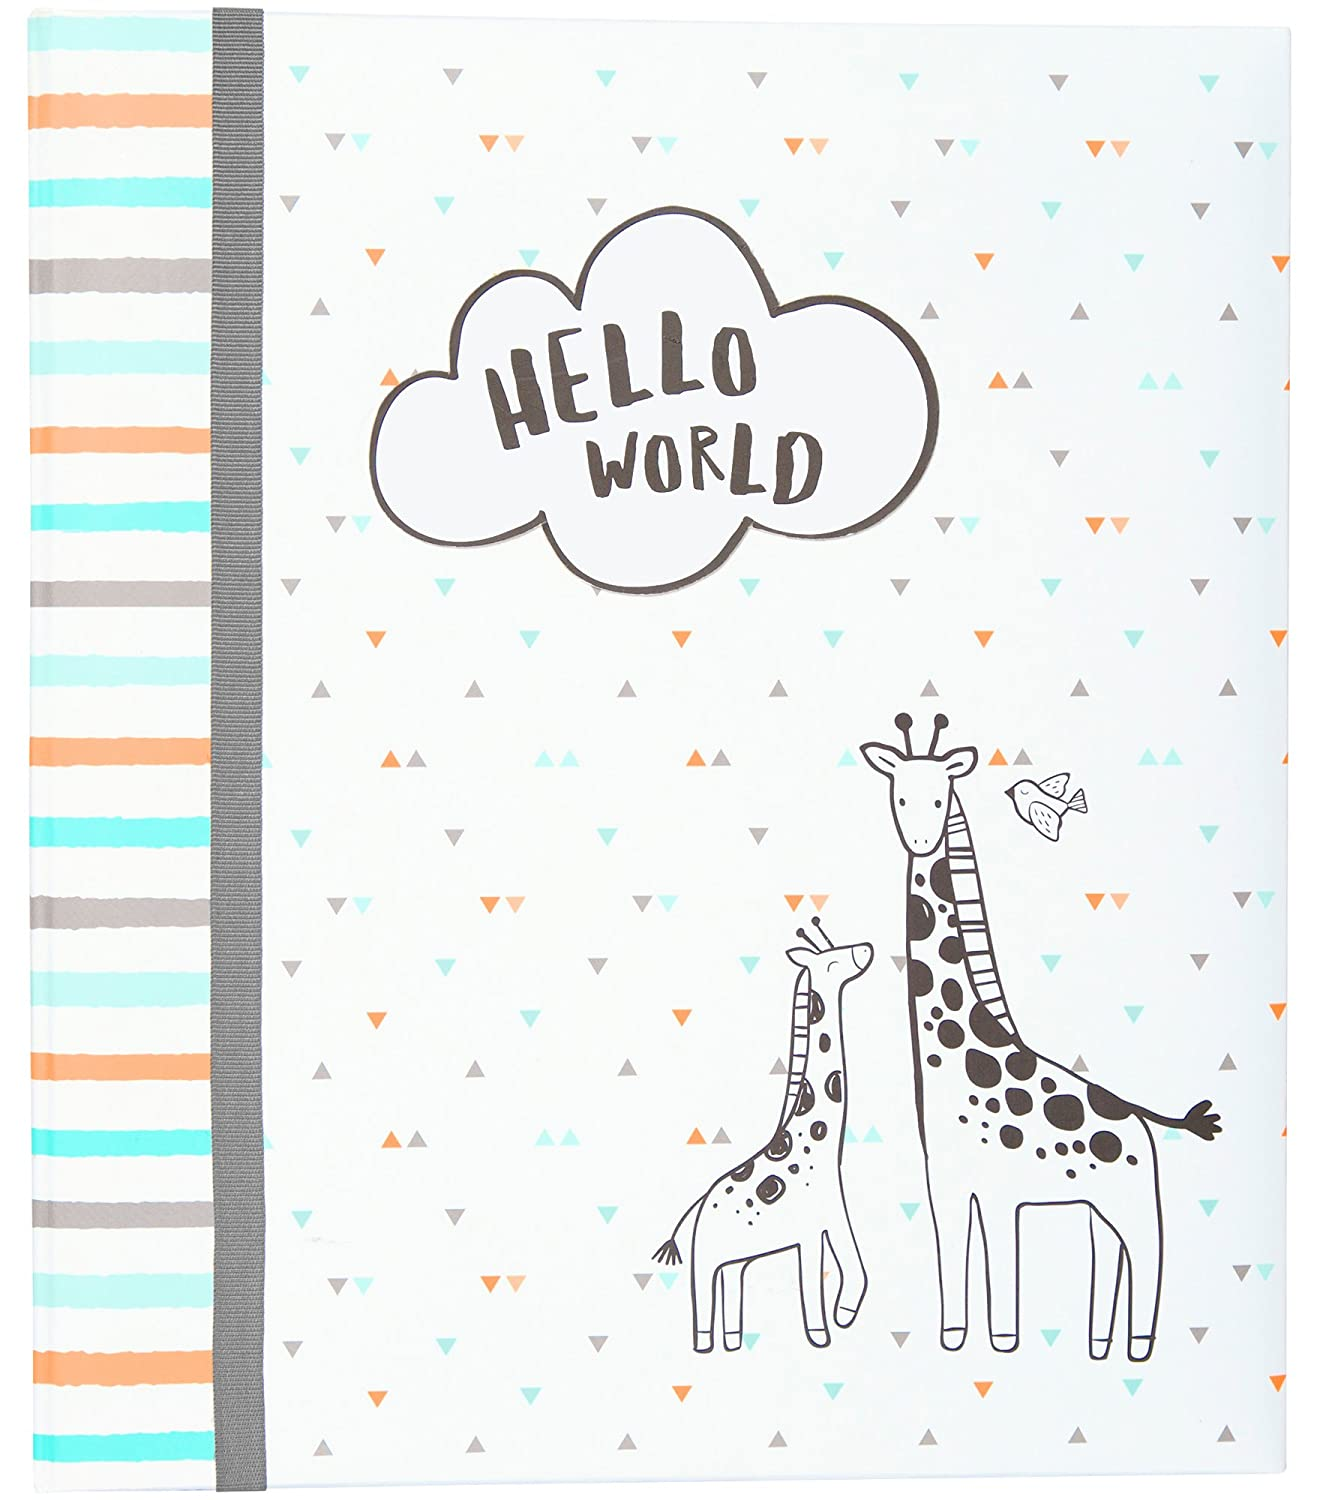 80 Pages 9 W x 8.875 H CartersHello World Slim Bound Photo Journal Album for Babies and Newborns